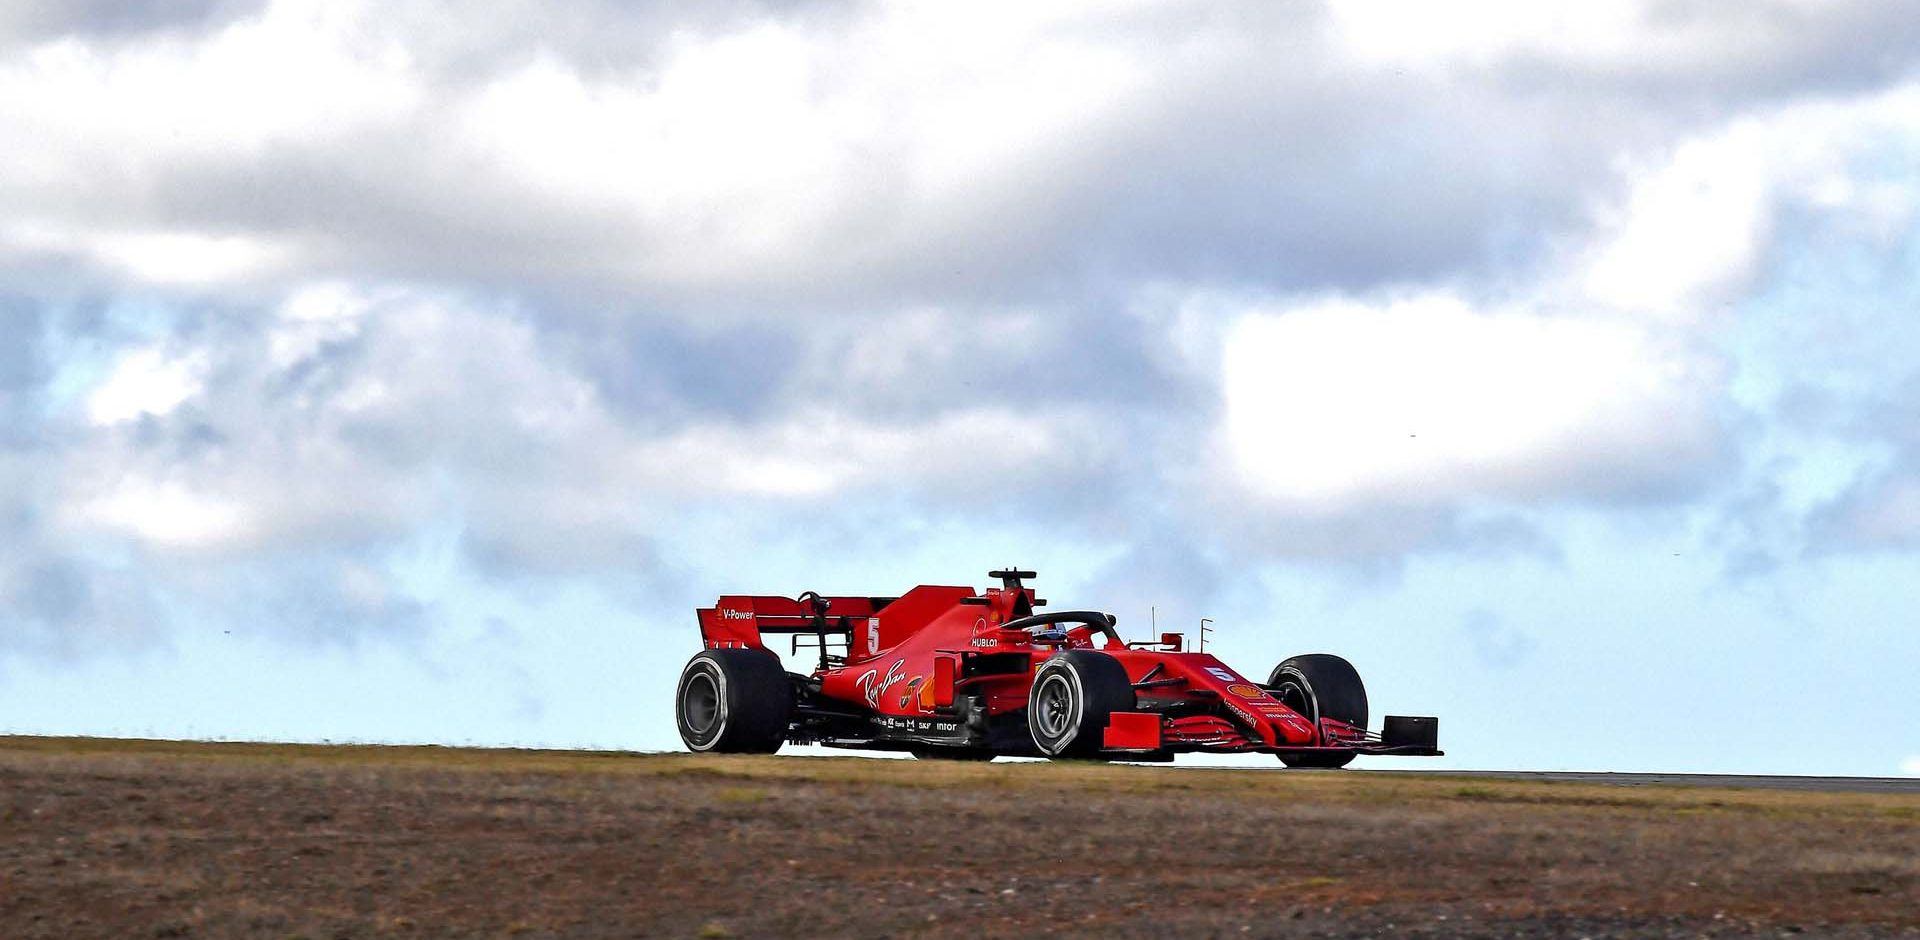 GP PORTOGALLO F1/2020 -  VENERDÌ 23/10/2020   credit: @Scuderia Ferrari Press Office Sebastian Vettel